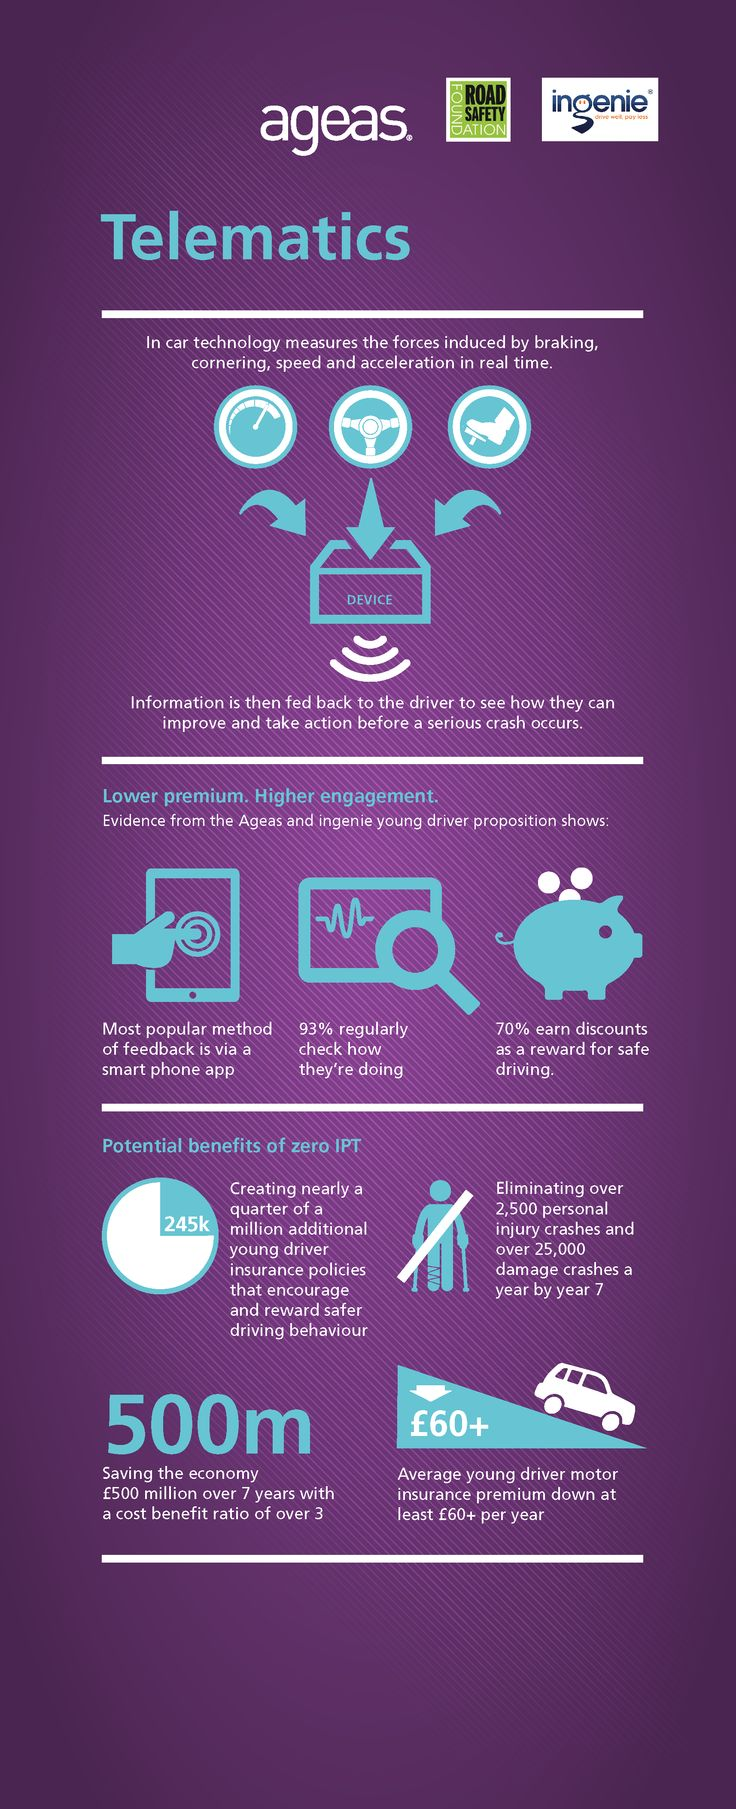 Infographic Evidence from ingenie and Ageas UK shows